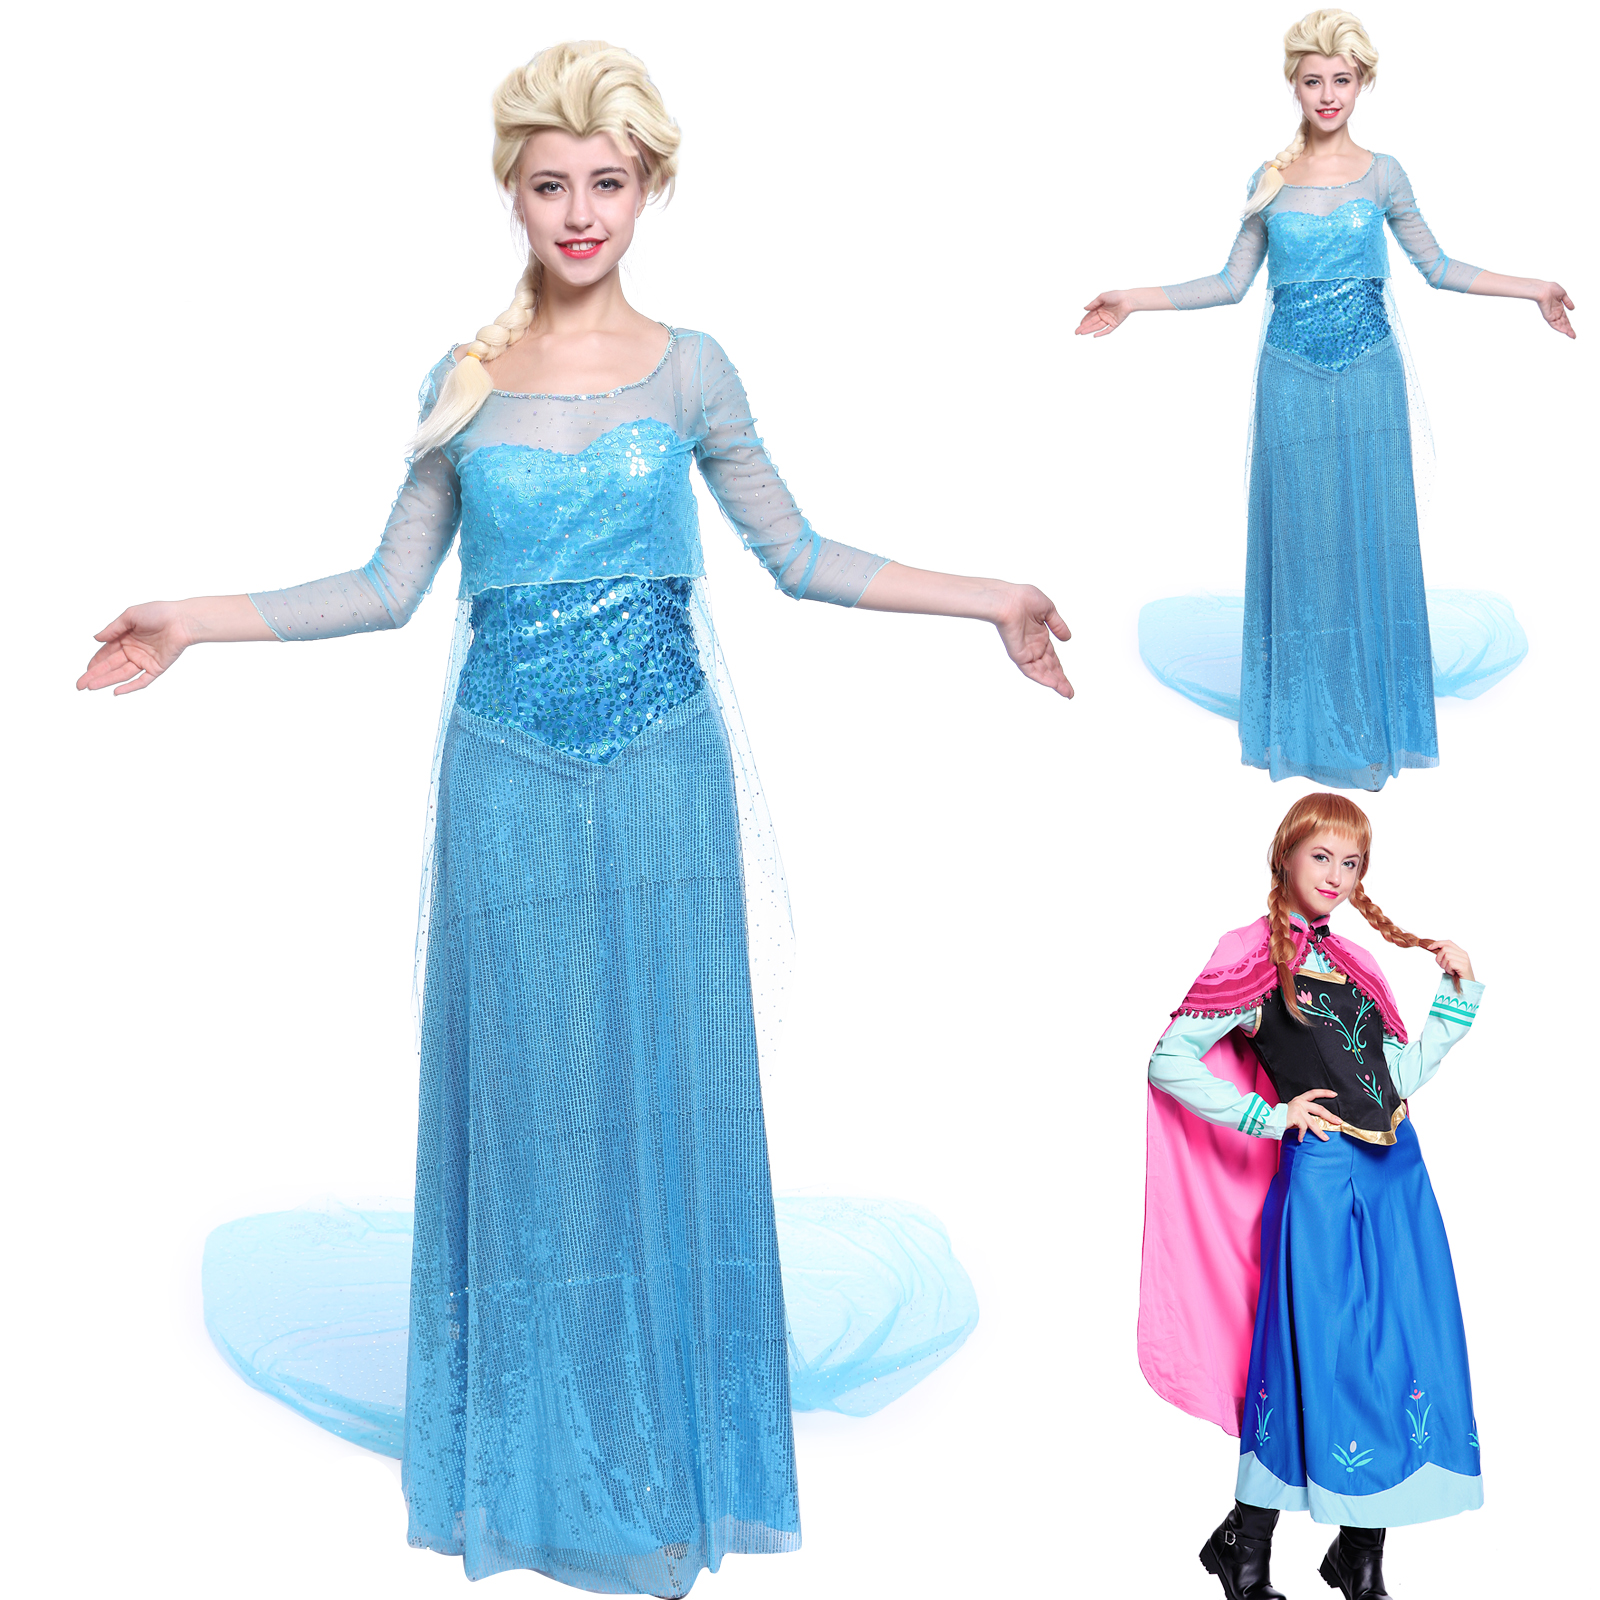 damen kost m schneek nigin elsa eisk nigin kost m elsa cosplay kost m partykleid ebay. Black Bedroom Furniture Sets. Home Design Ideas